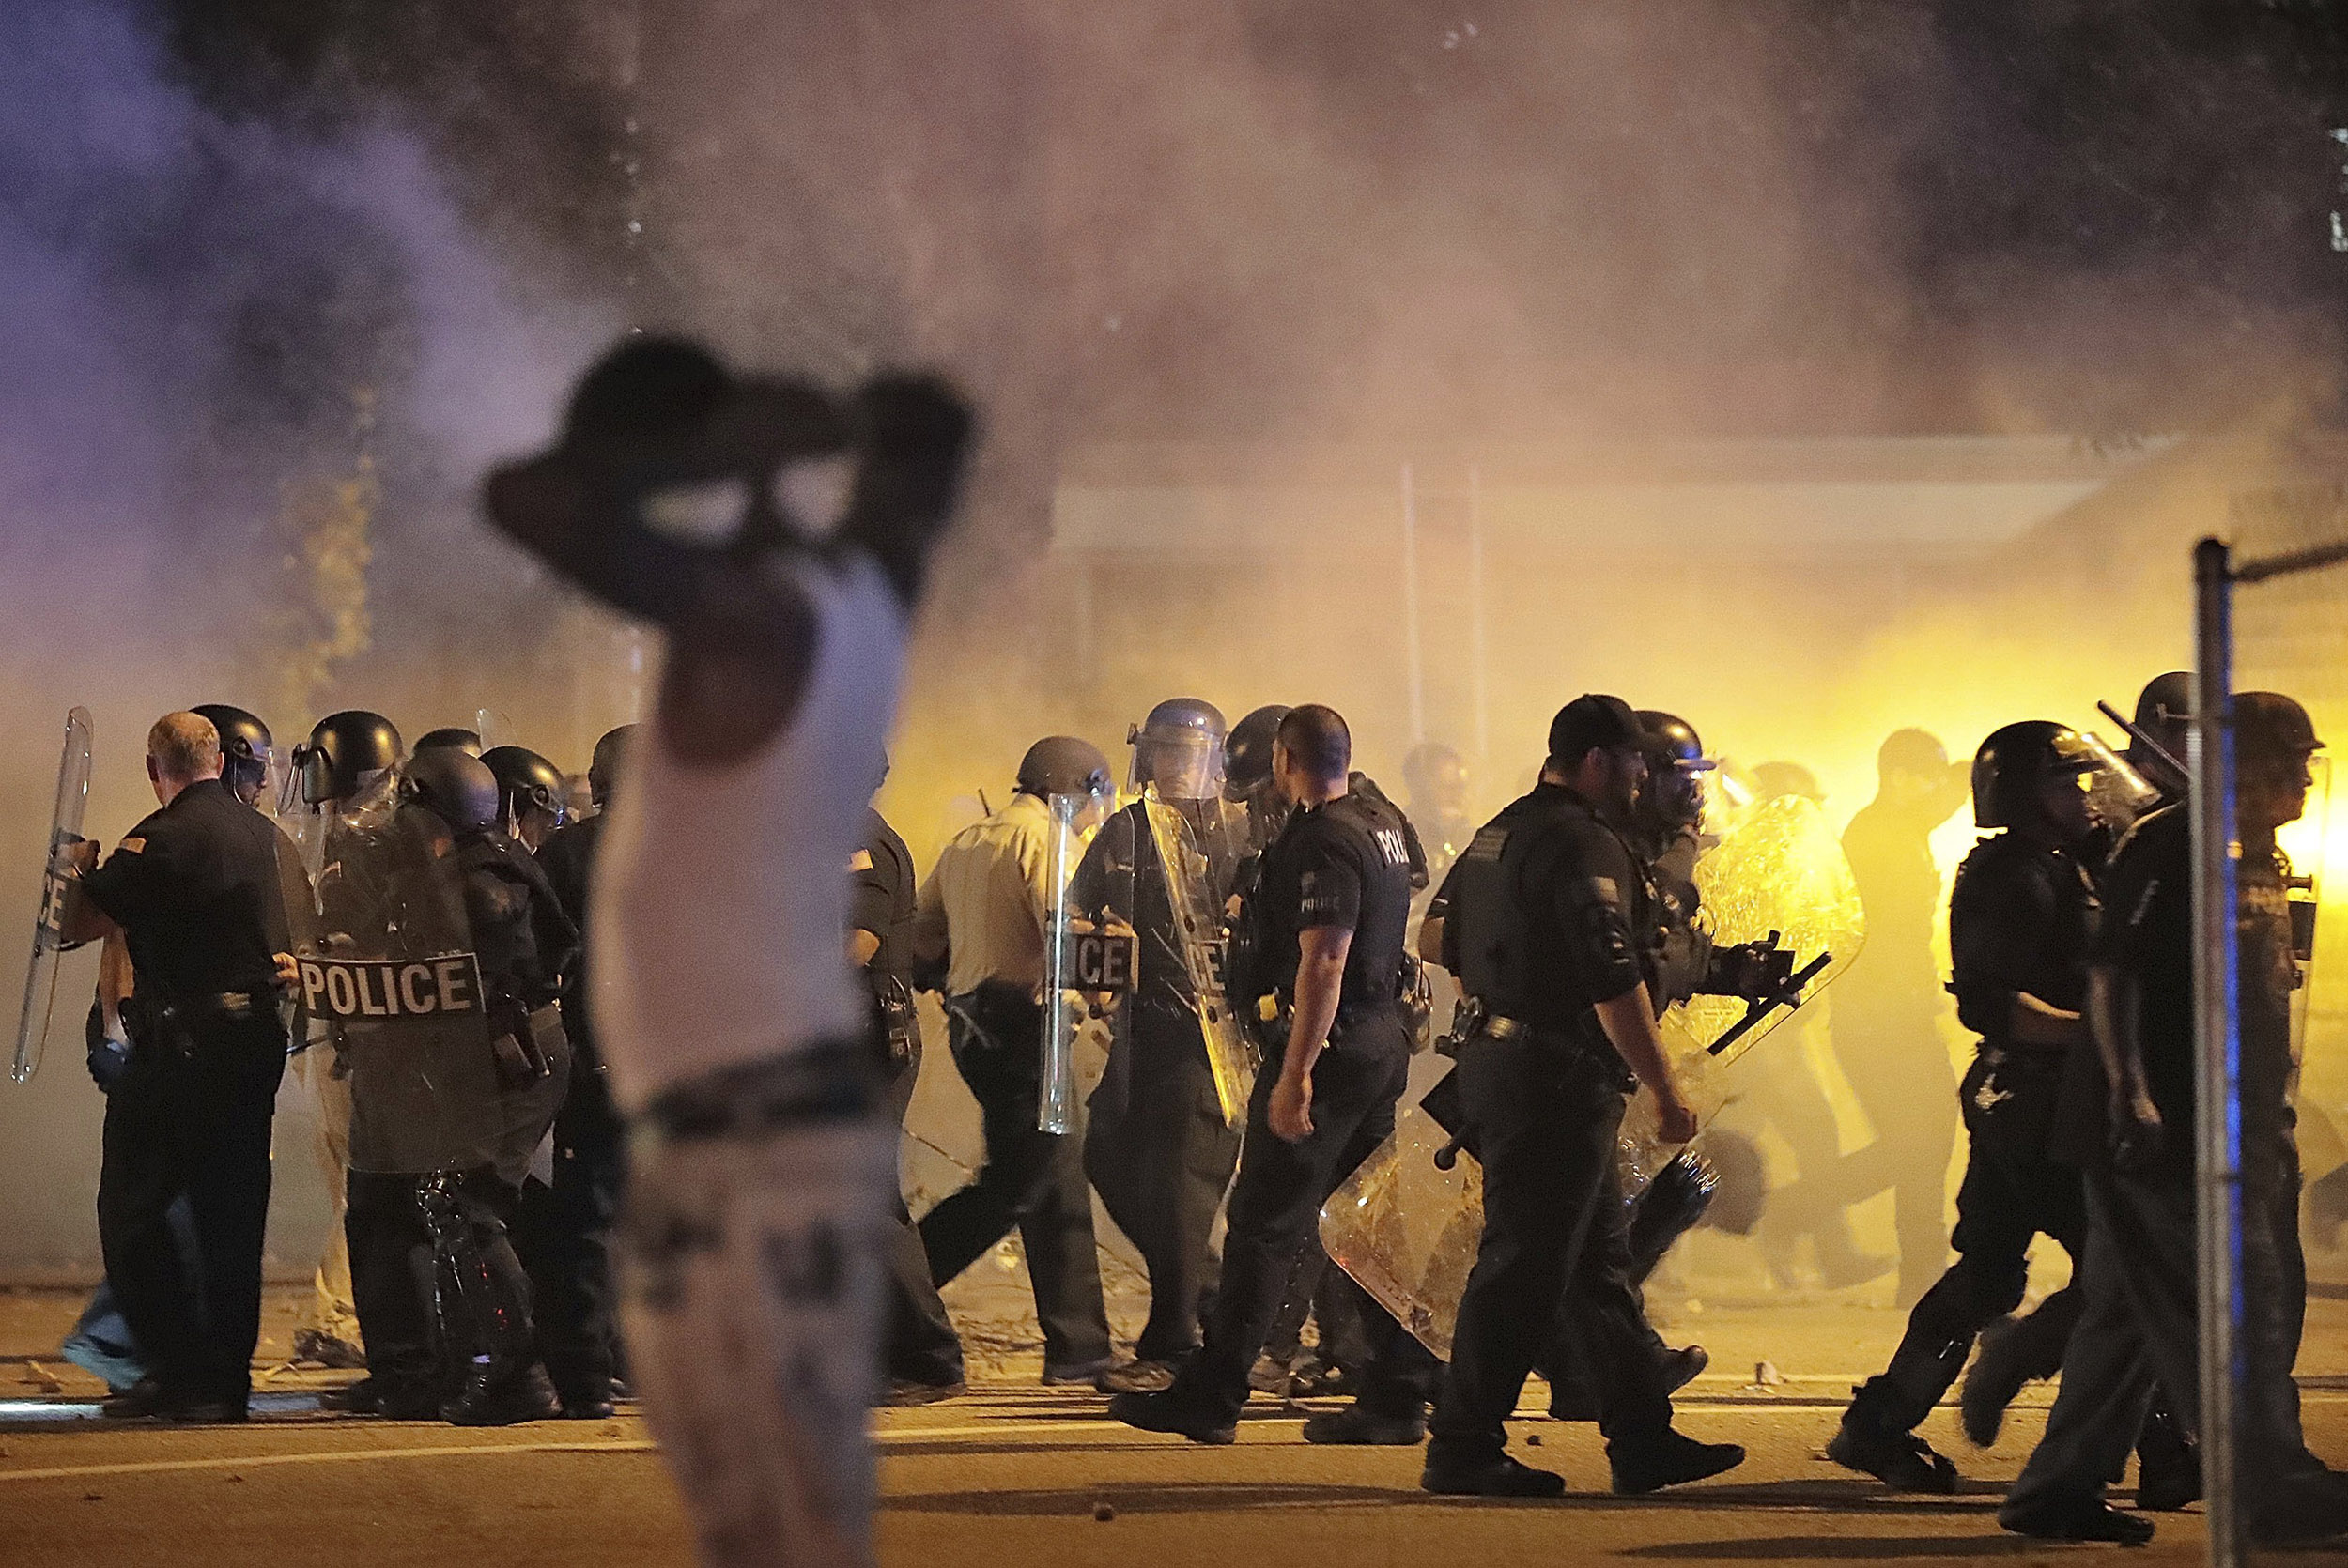 Dozens-of-officers-injured-during-protest-in-Memphis-after-task-force-kills-man